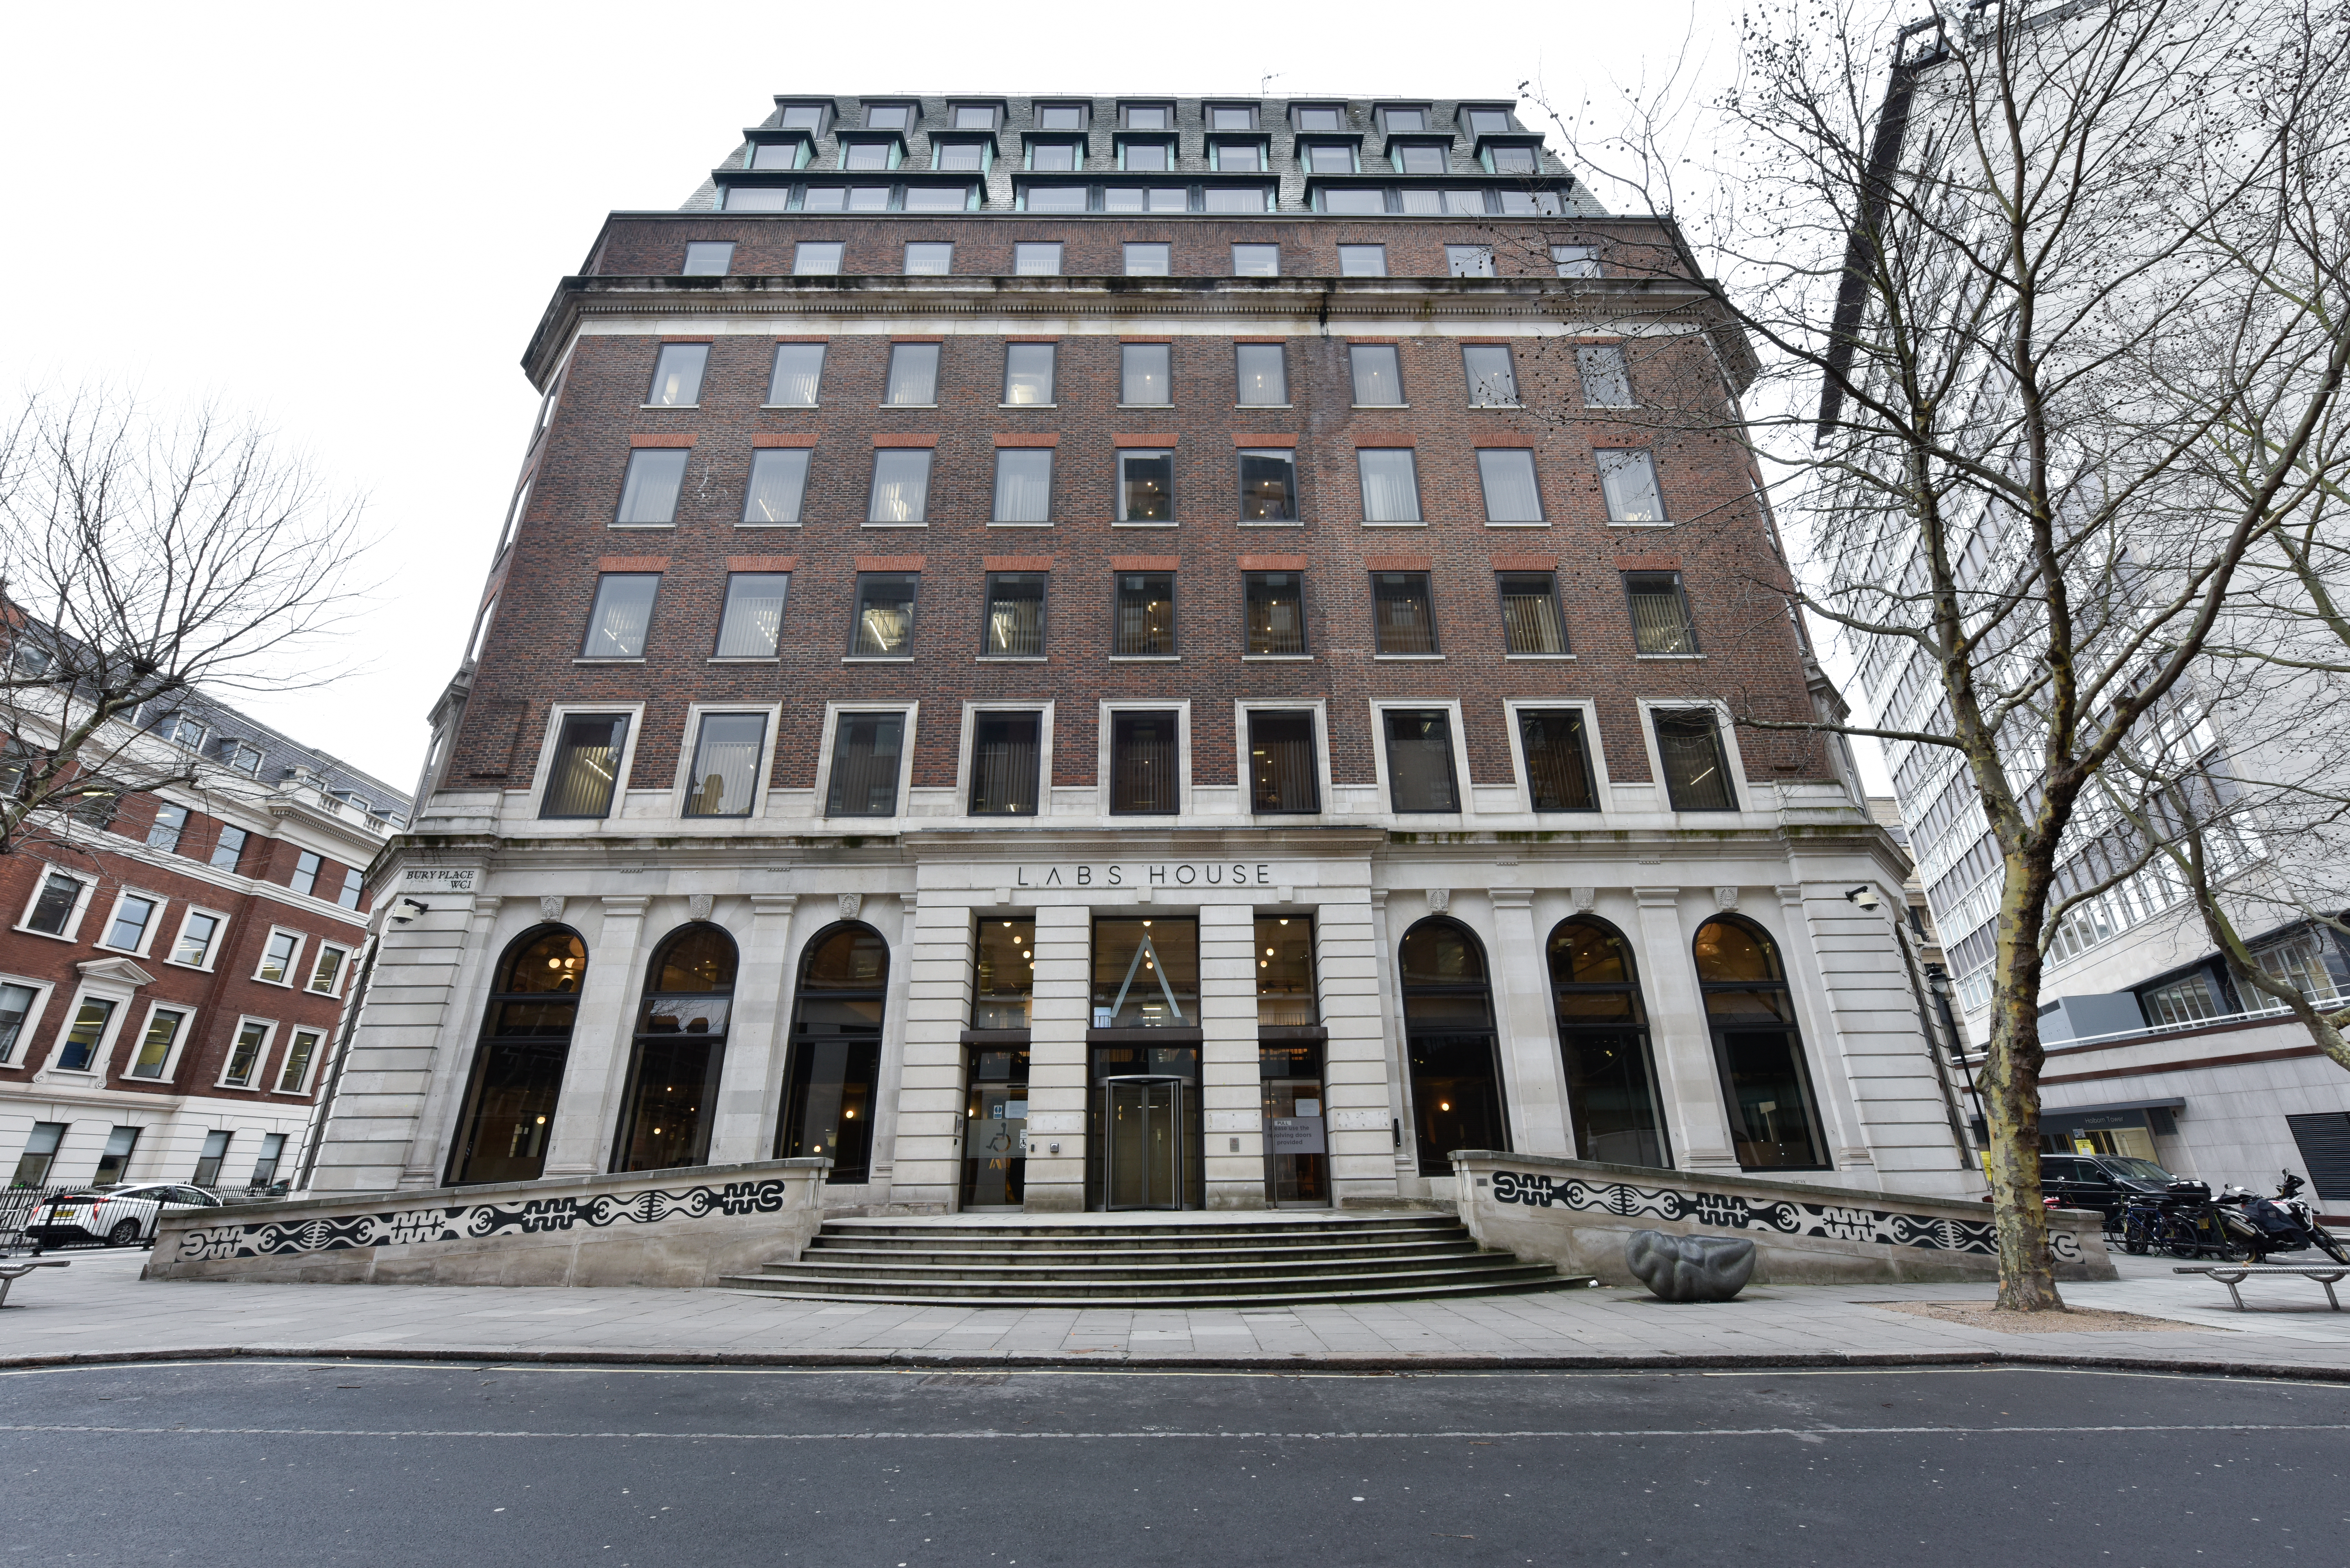 Labs House - 15-19 Bloomsbury Way, WC1 - Holborn (private, co-working)